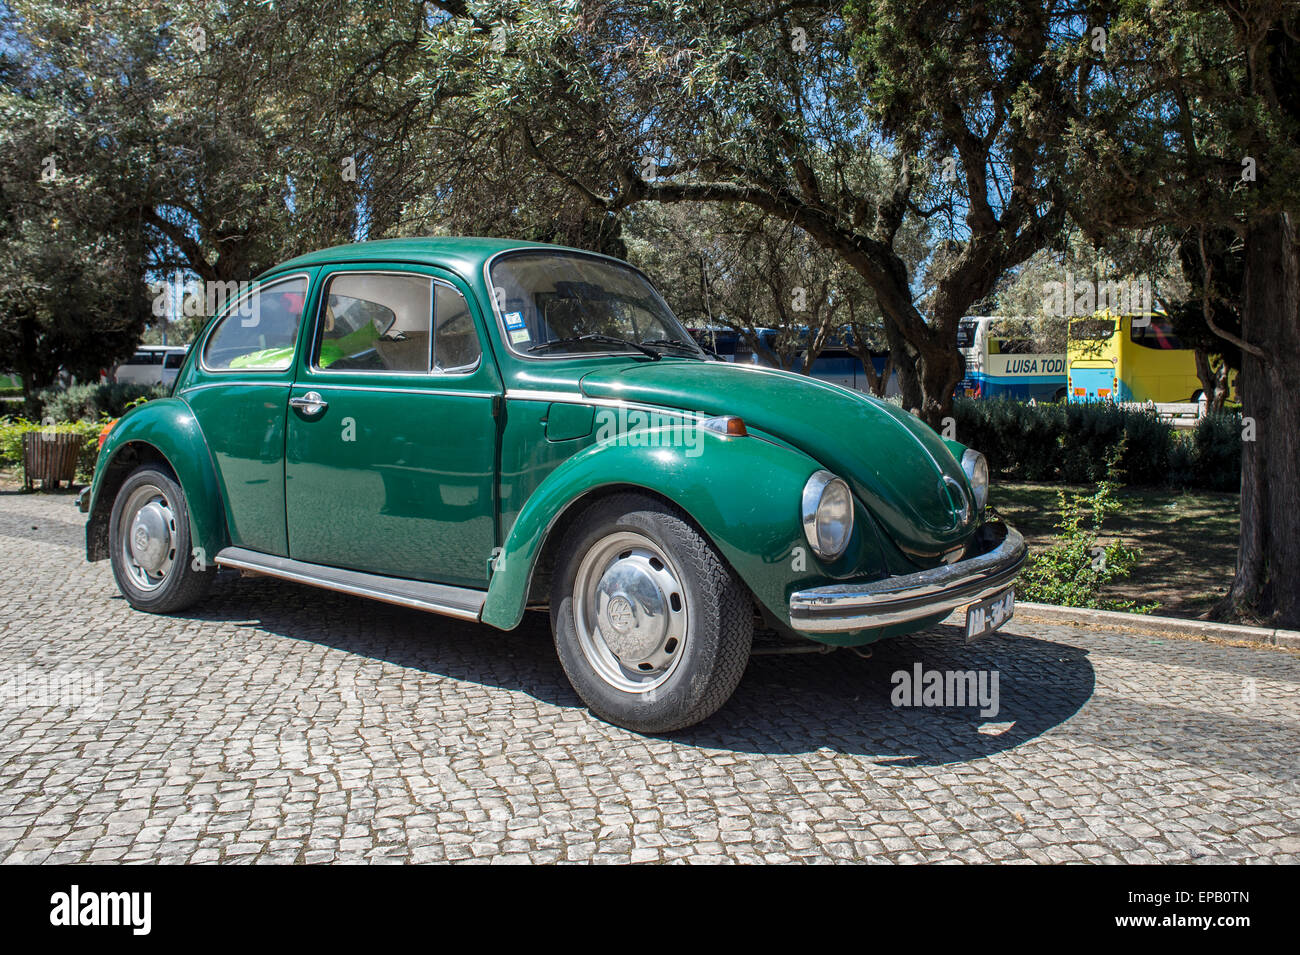 green VW Beetle car - Stock Image